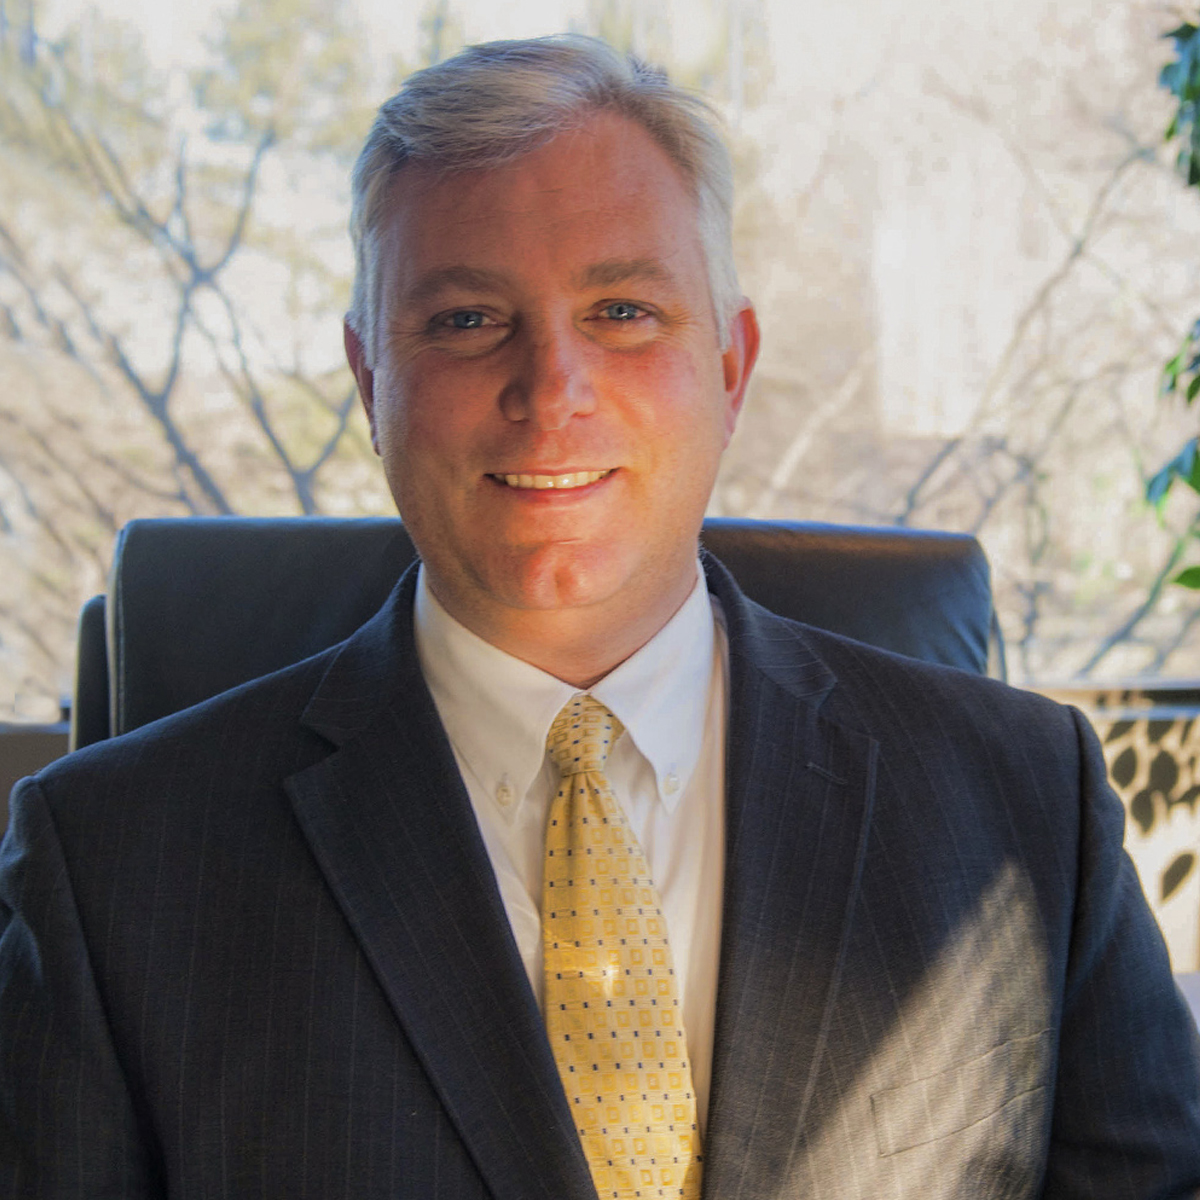 Coleman Nee, Triangle CEO